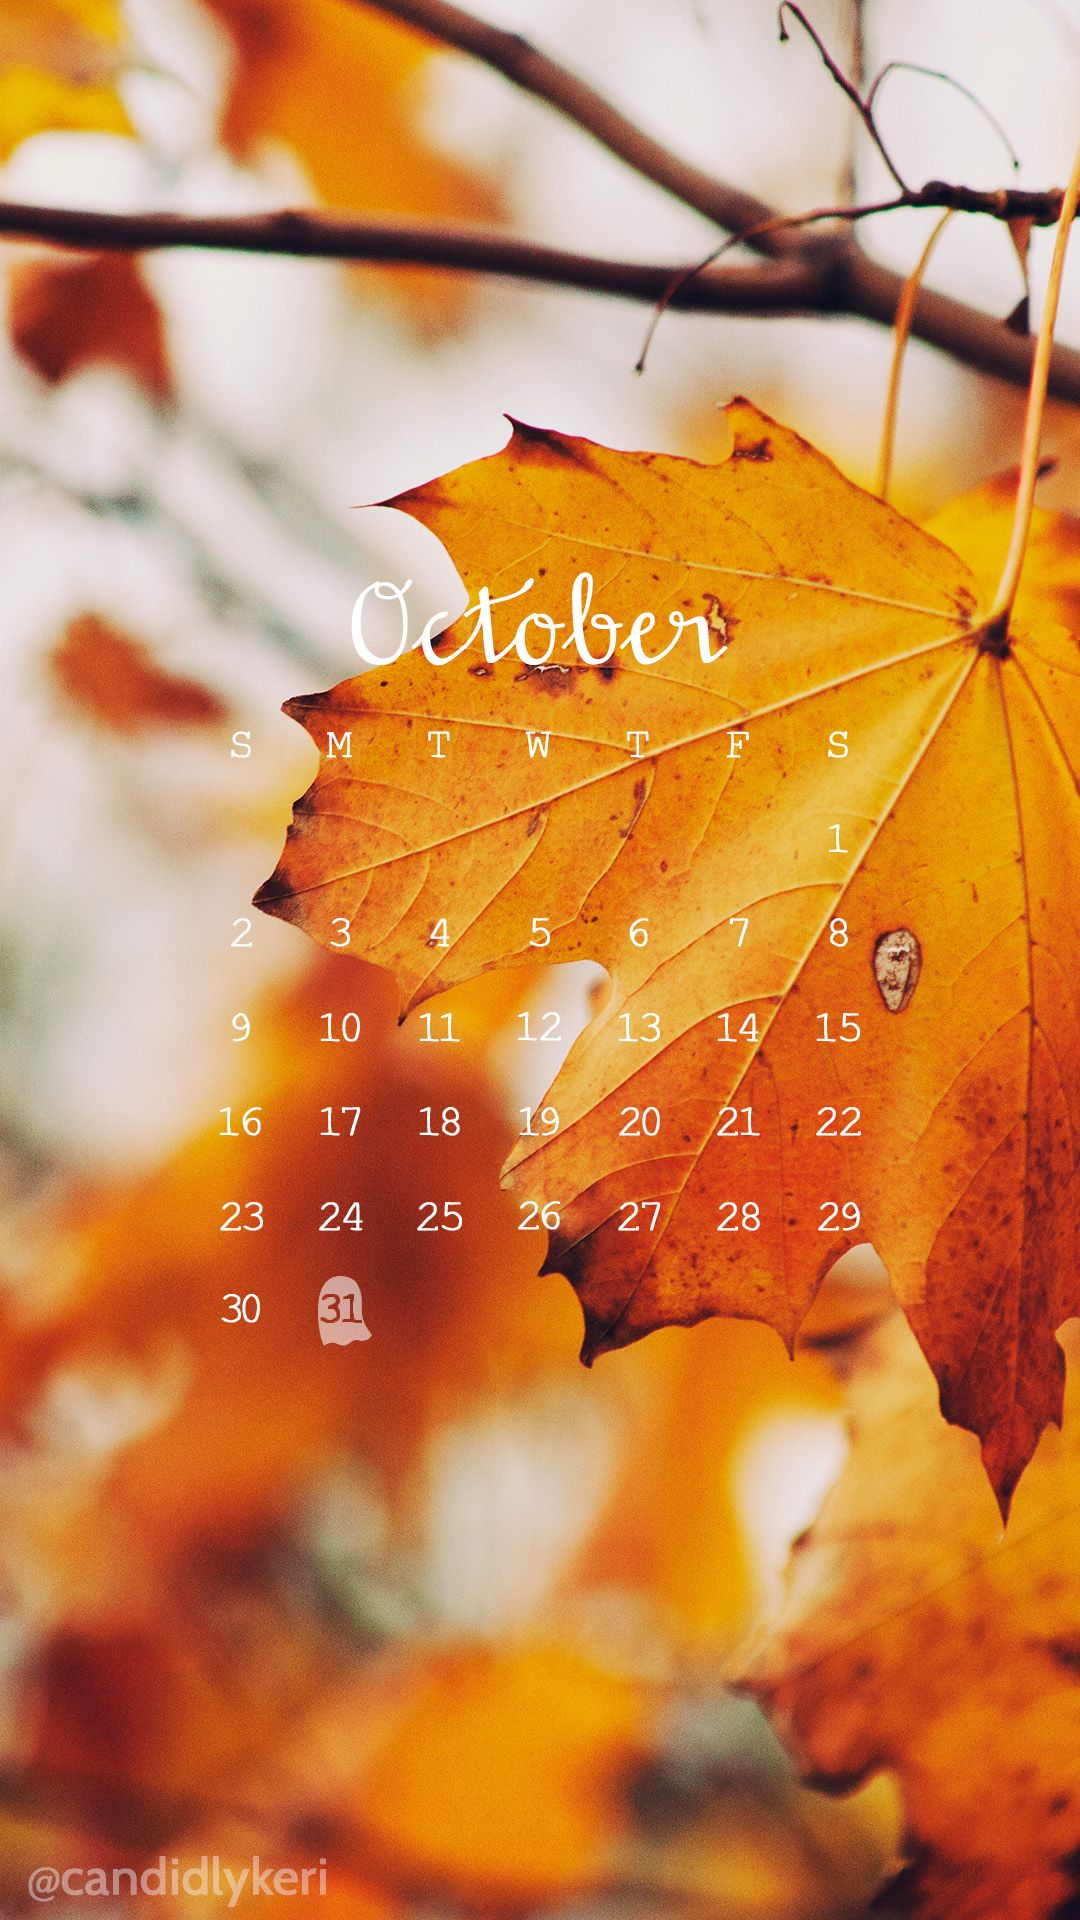 Fall leaves photo October calendar 2016 wallpaper you can